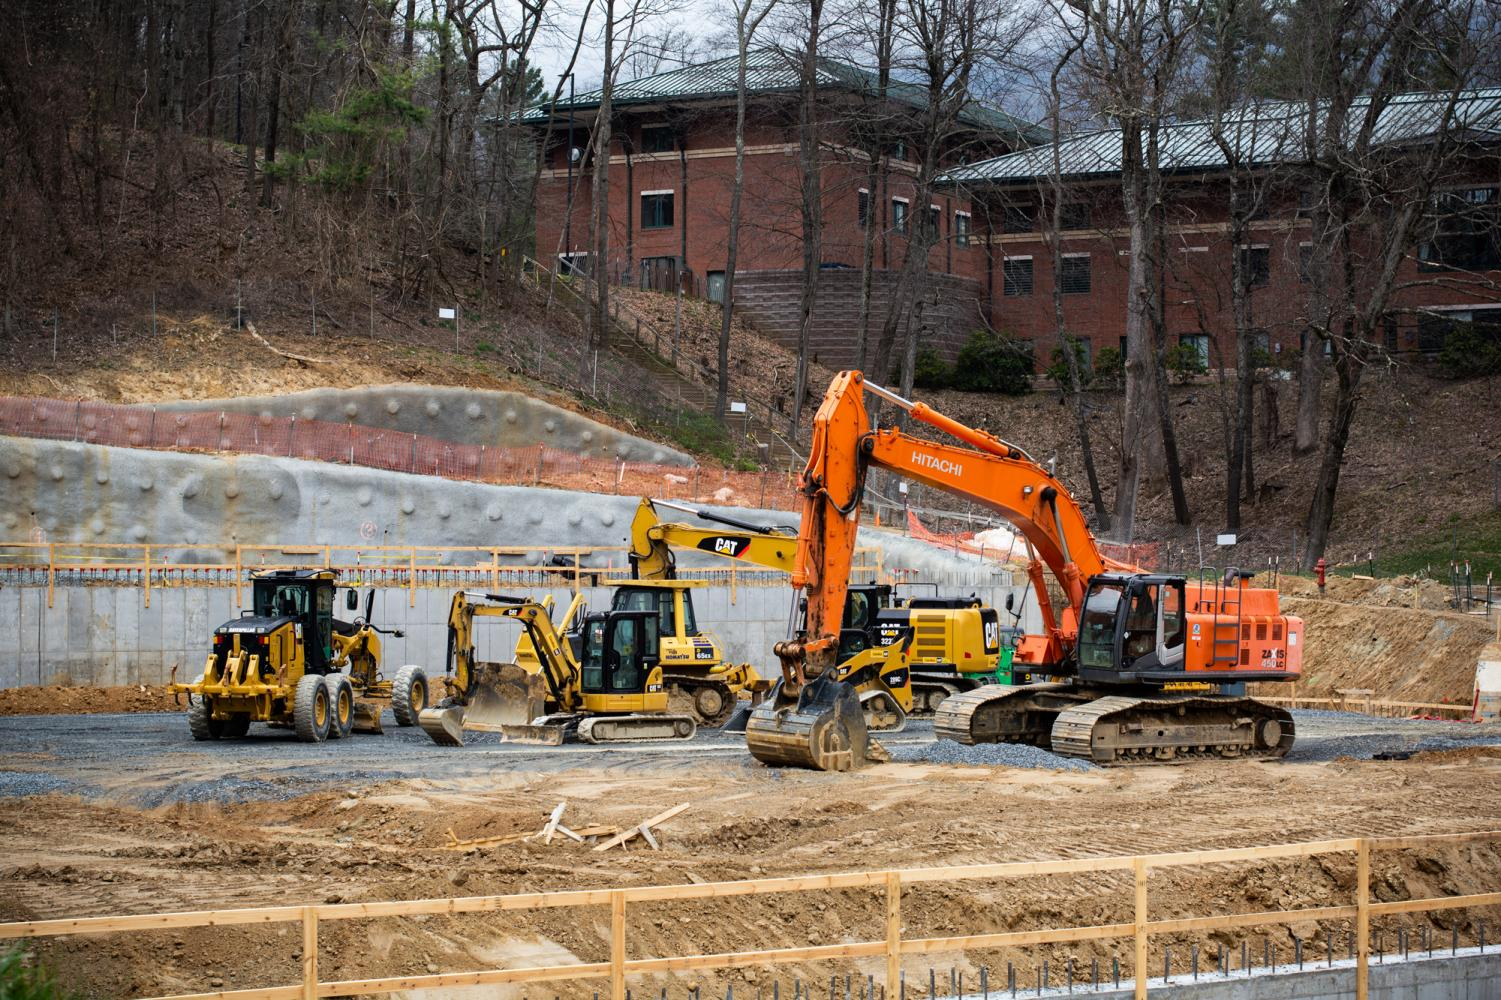 A parking deck is being built between Frank and Eggers Residence Halls. The deck will contain close to 500 spots and is set to open by the end of 2020. Photo by Brendan Hoekstra